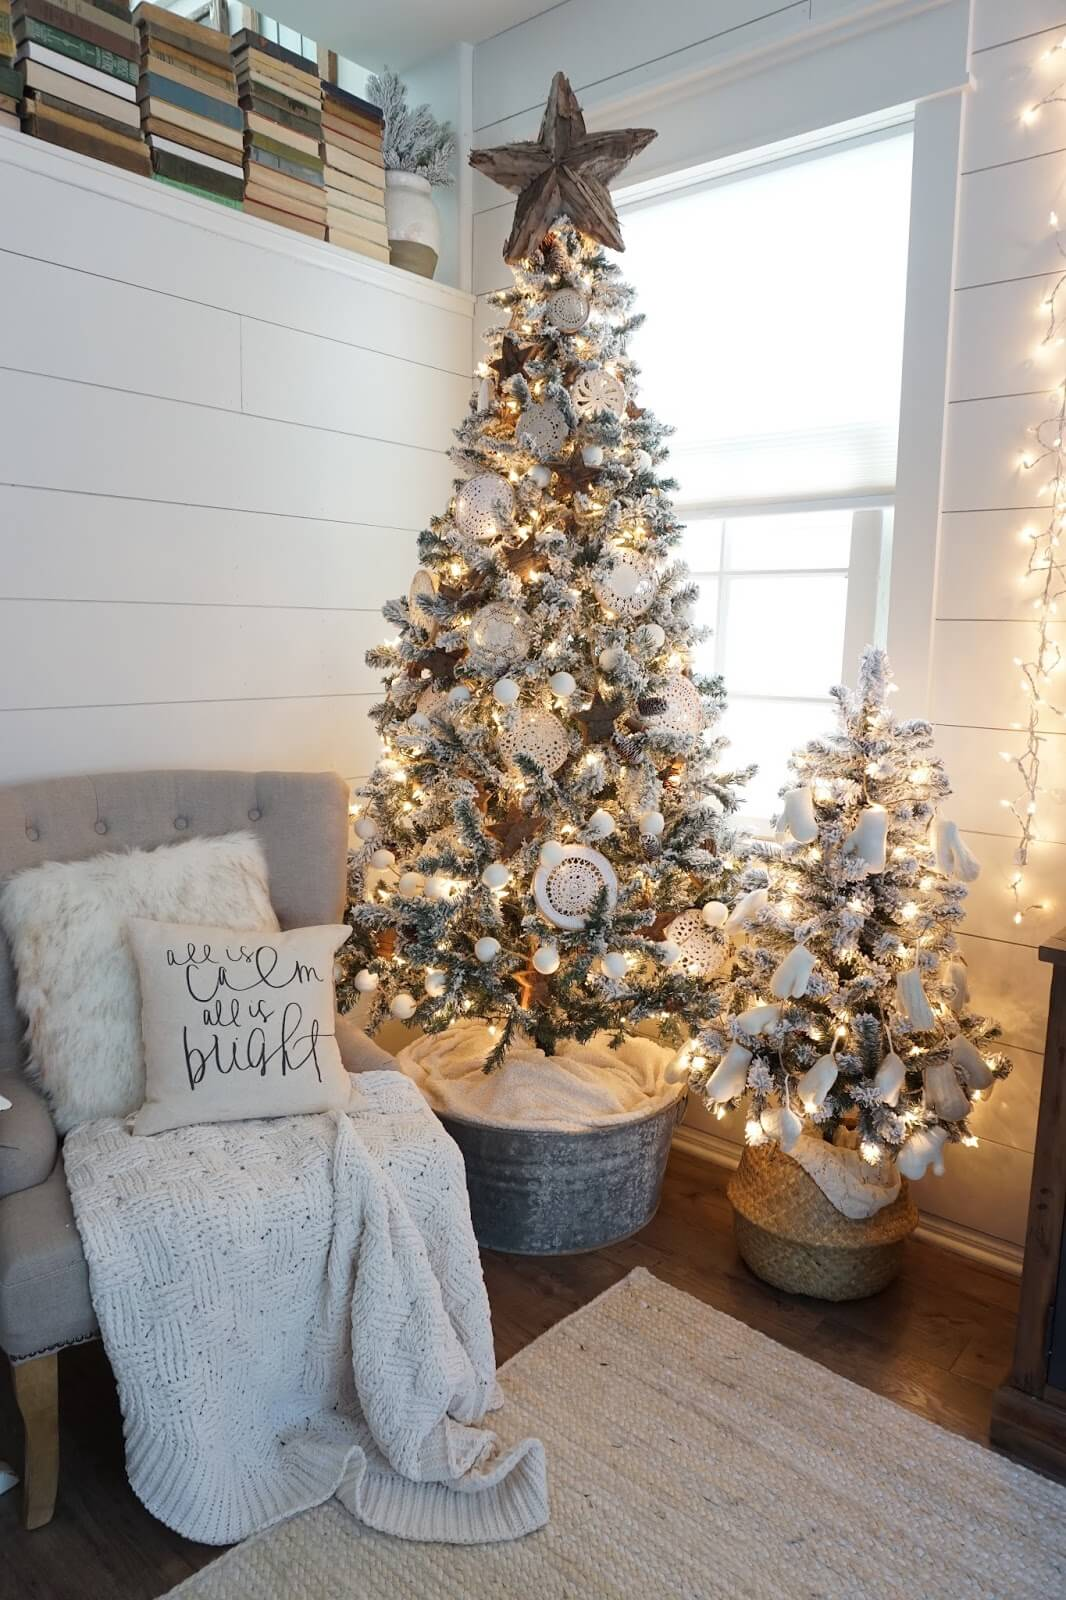 Breathtaking Dual Christmas Tree and Pillows Design